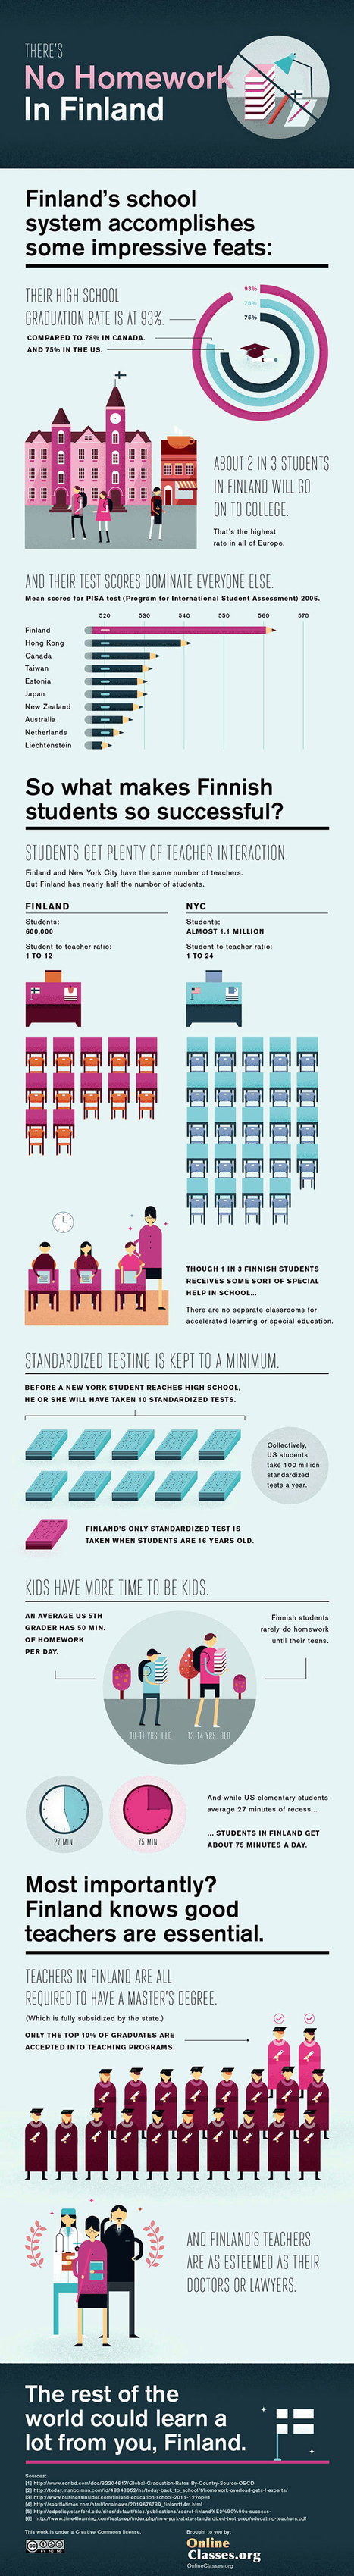 Finland's School System - Infographic | Positive futures | Scoop.it